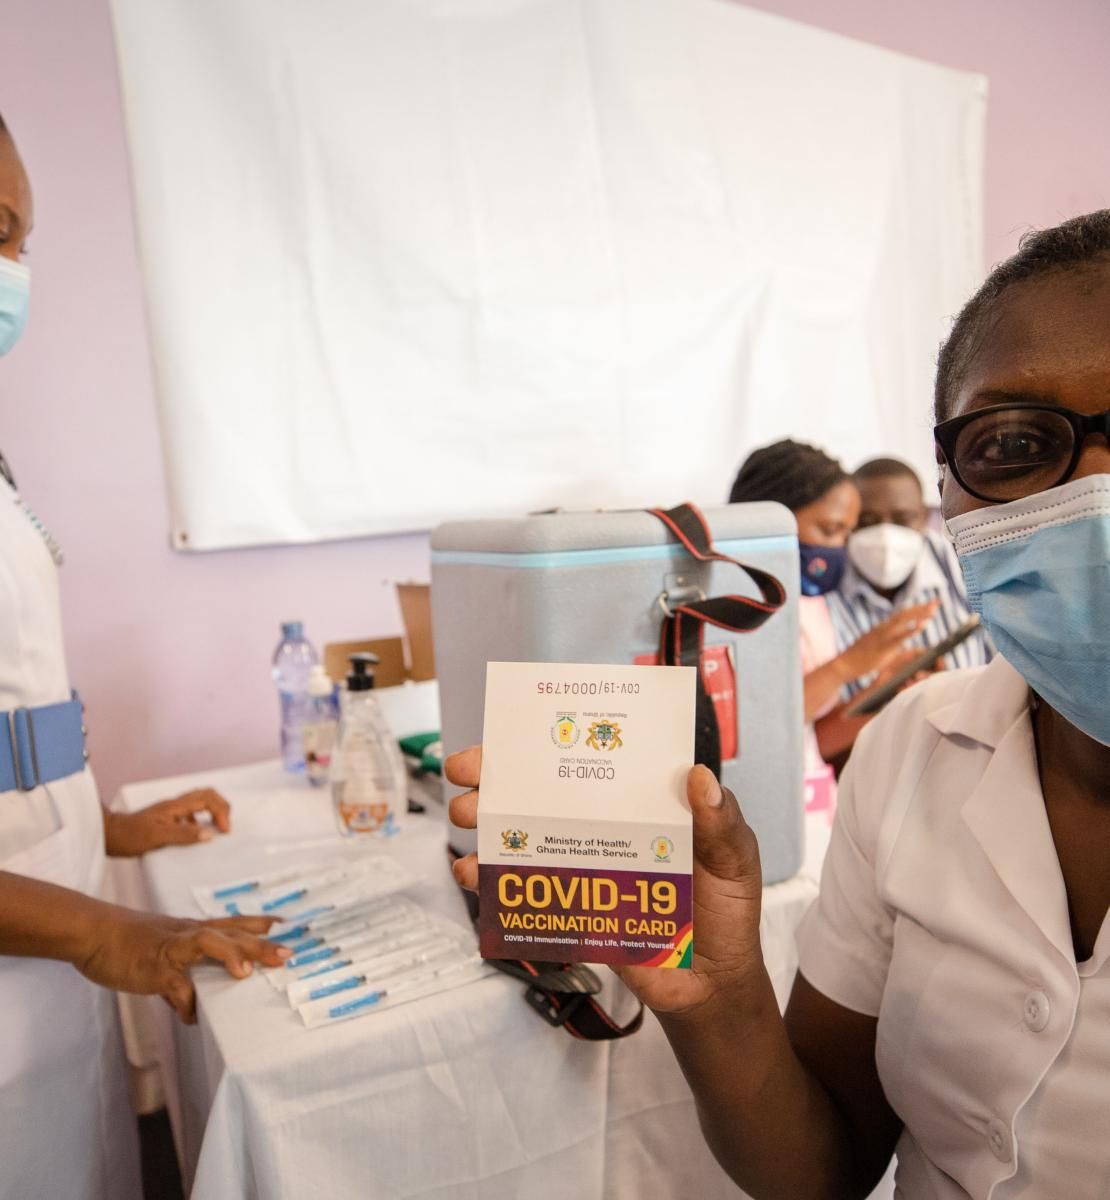 A healthcare professional at a vaccination site proudly holds up a COVID-19 vaccination card that verifies she received the vaccine.